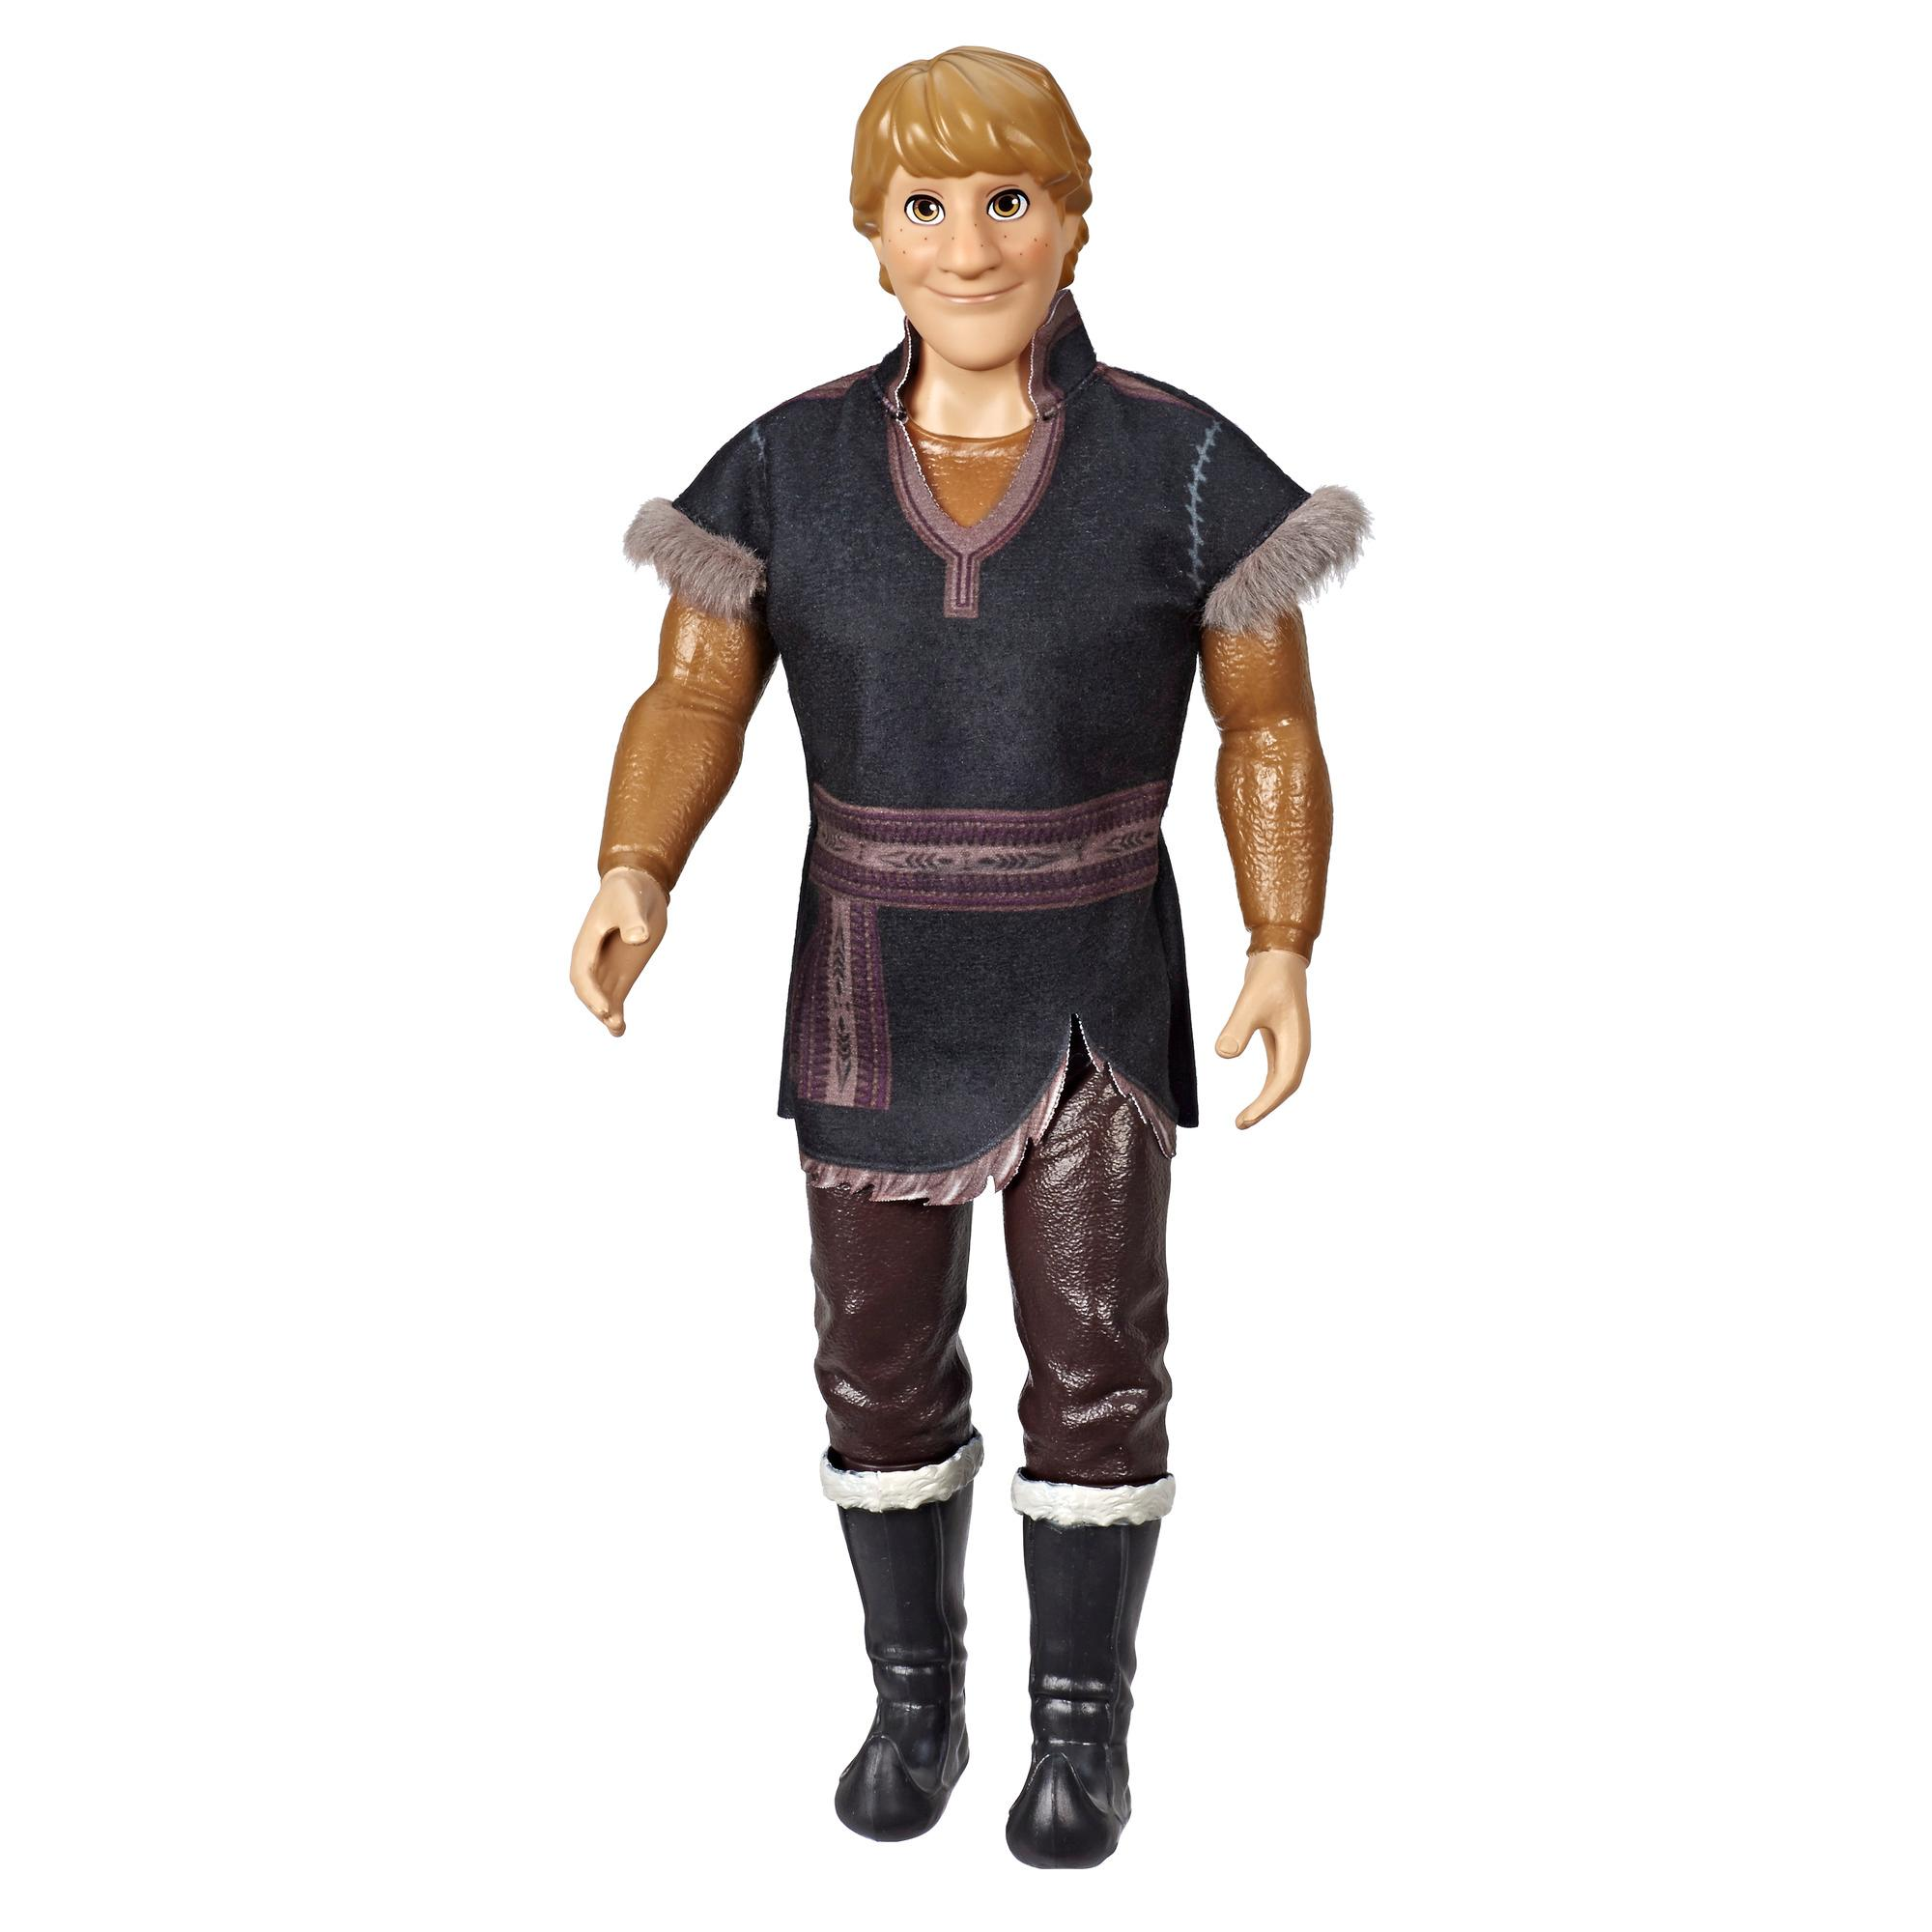 Disney Frozen Kristoff Fashion Doll With Brown Outfit Inspired by the Disney Frozen 2 Movie